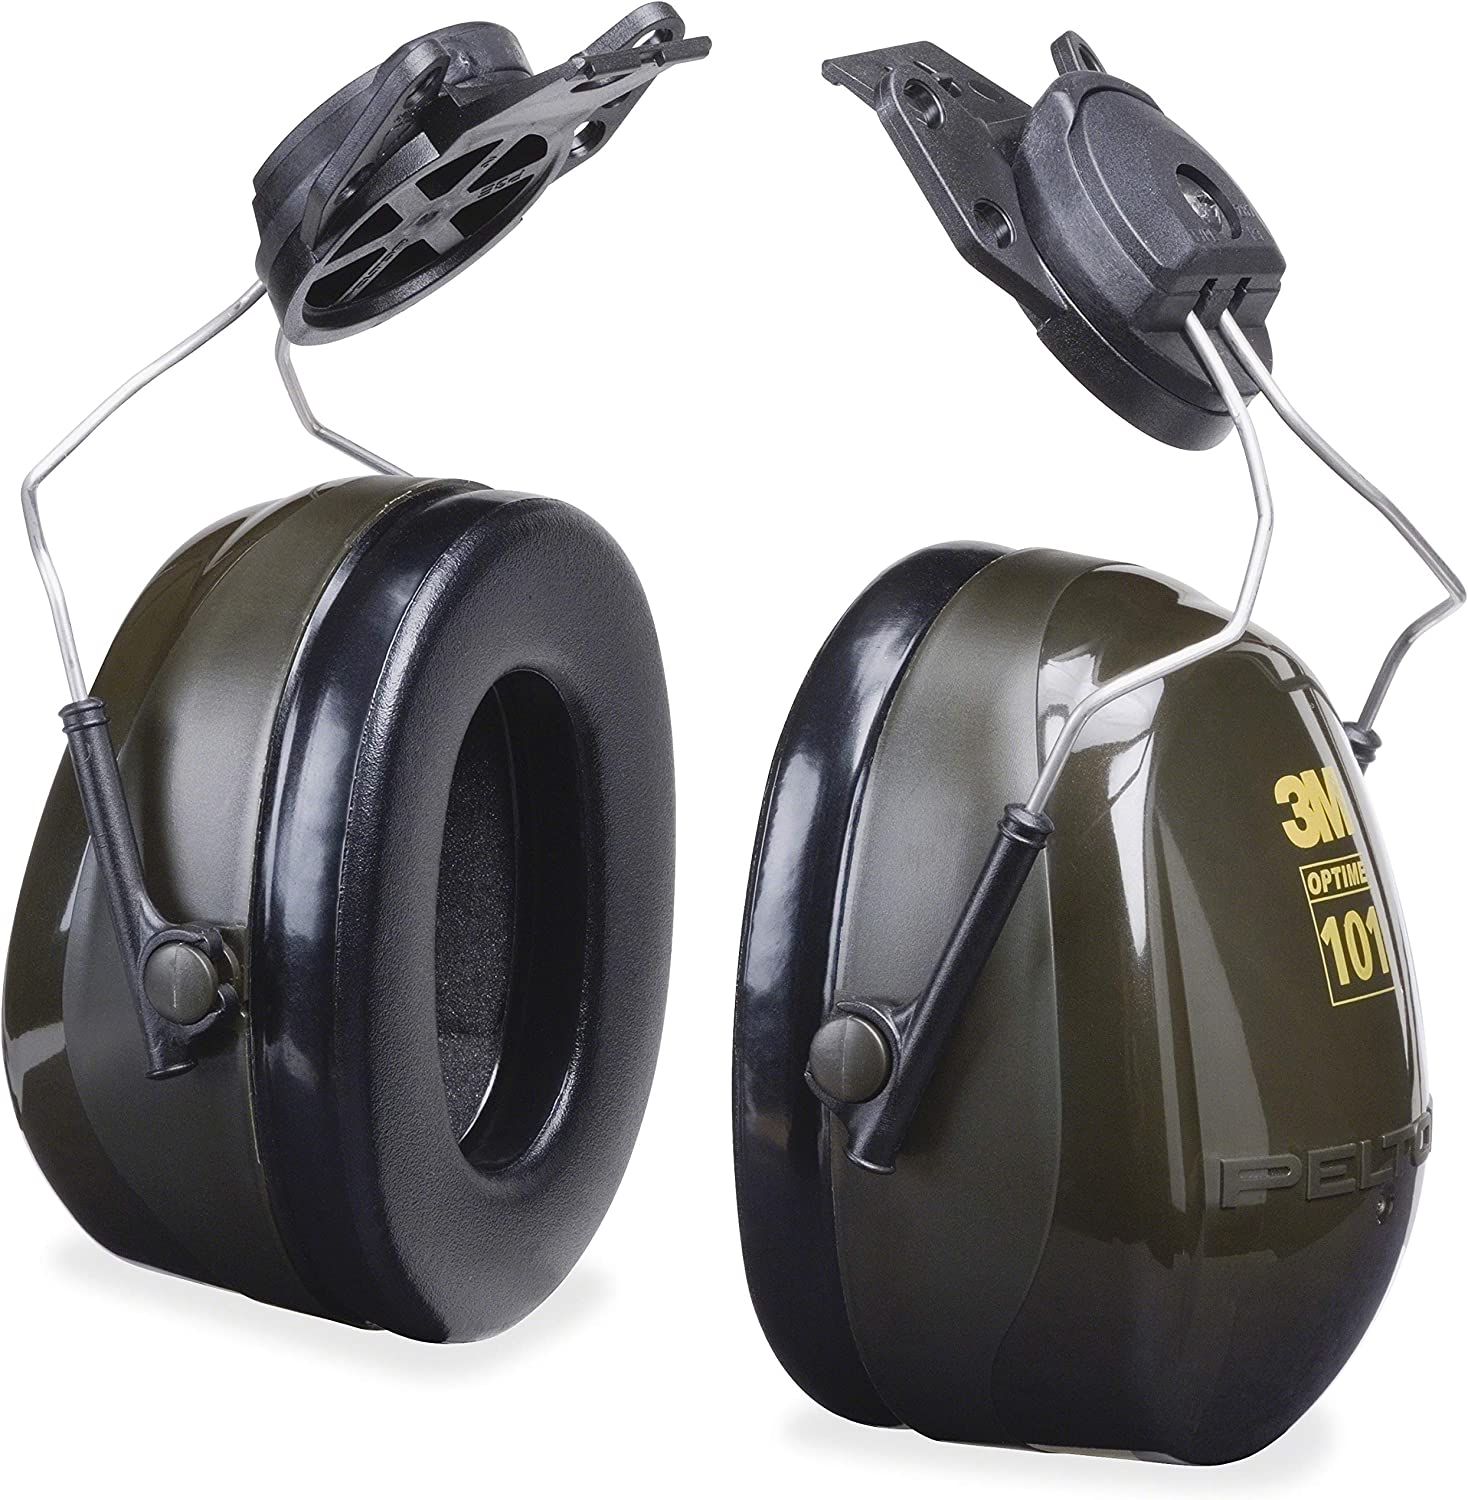 Special Campaign 3M-Commercial Tape Div. H7P3E Optime Earmuff - Headset Portland Mall Cap Mount